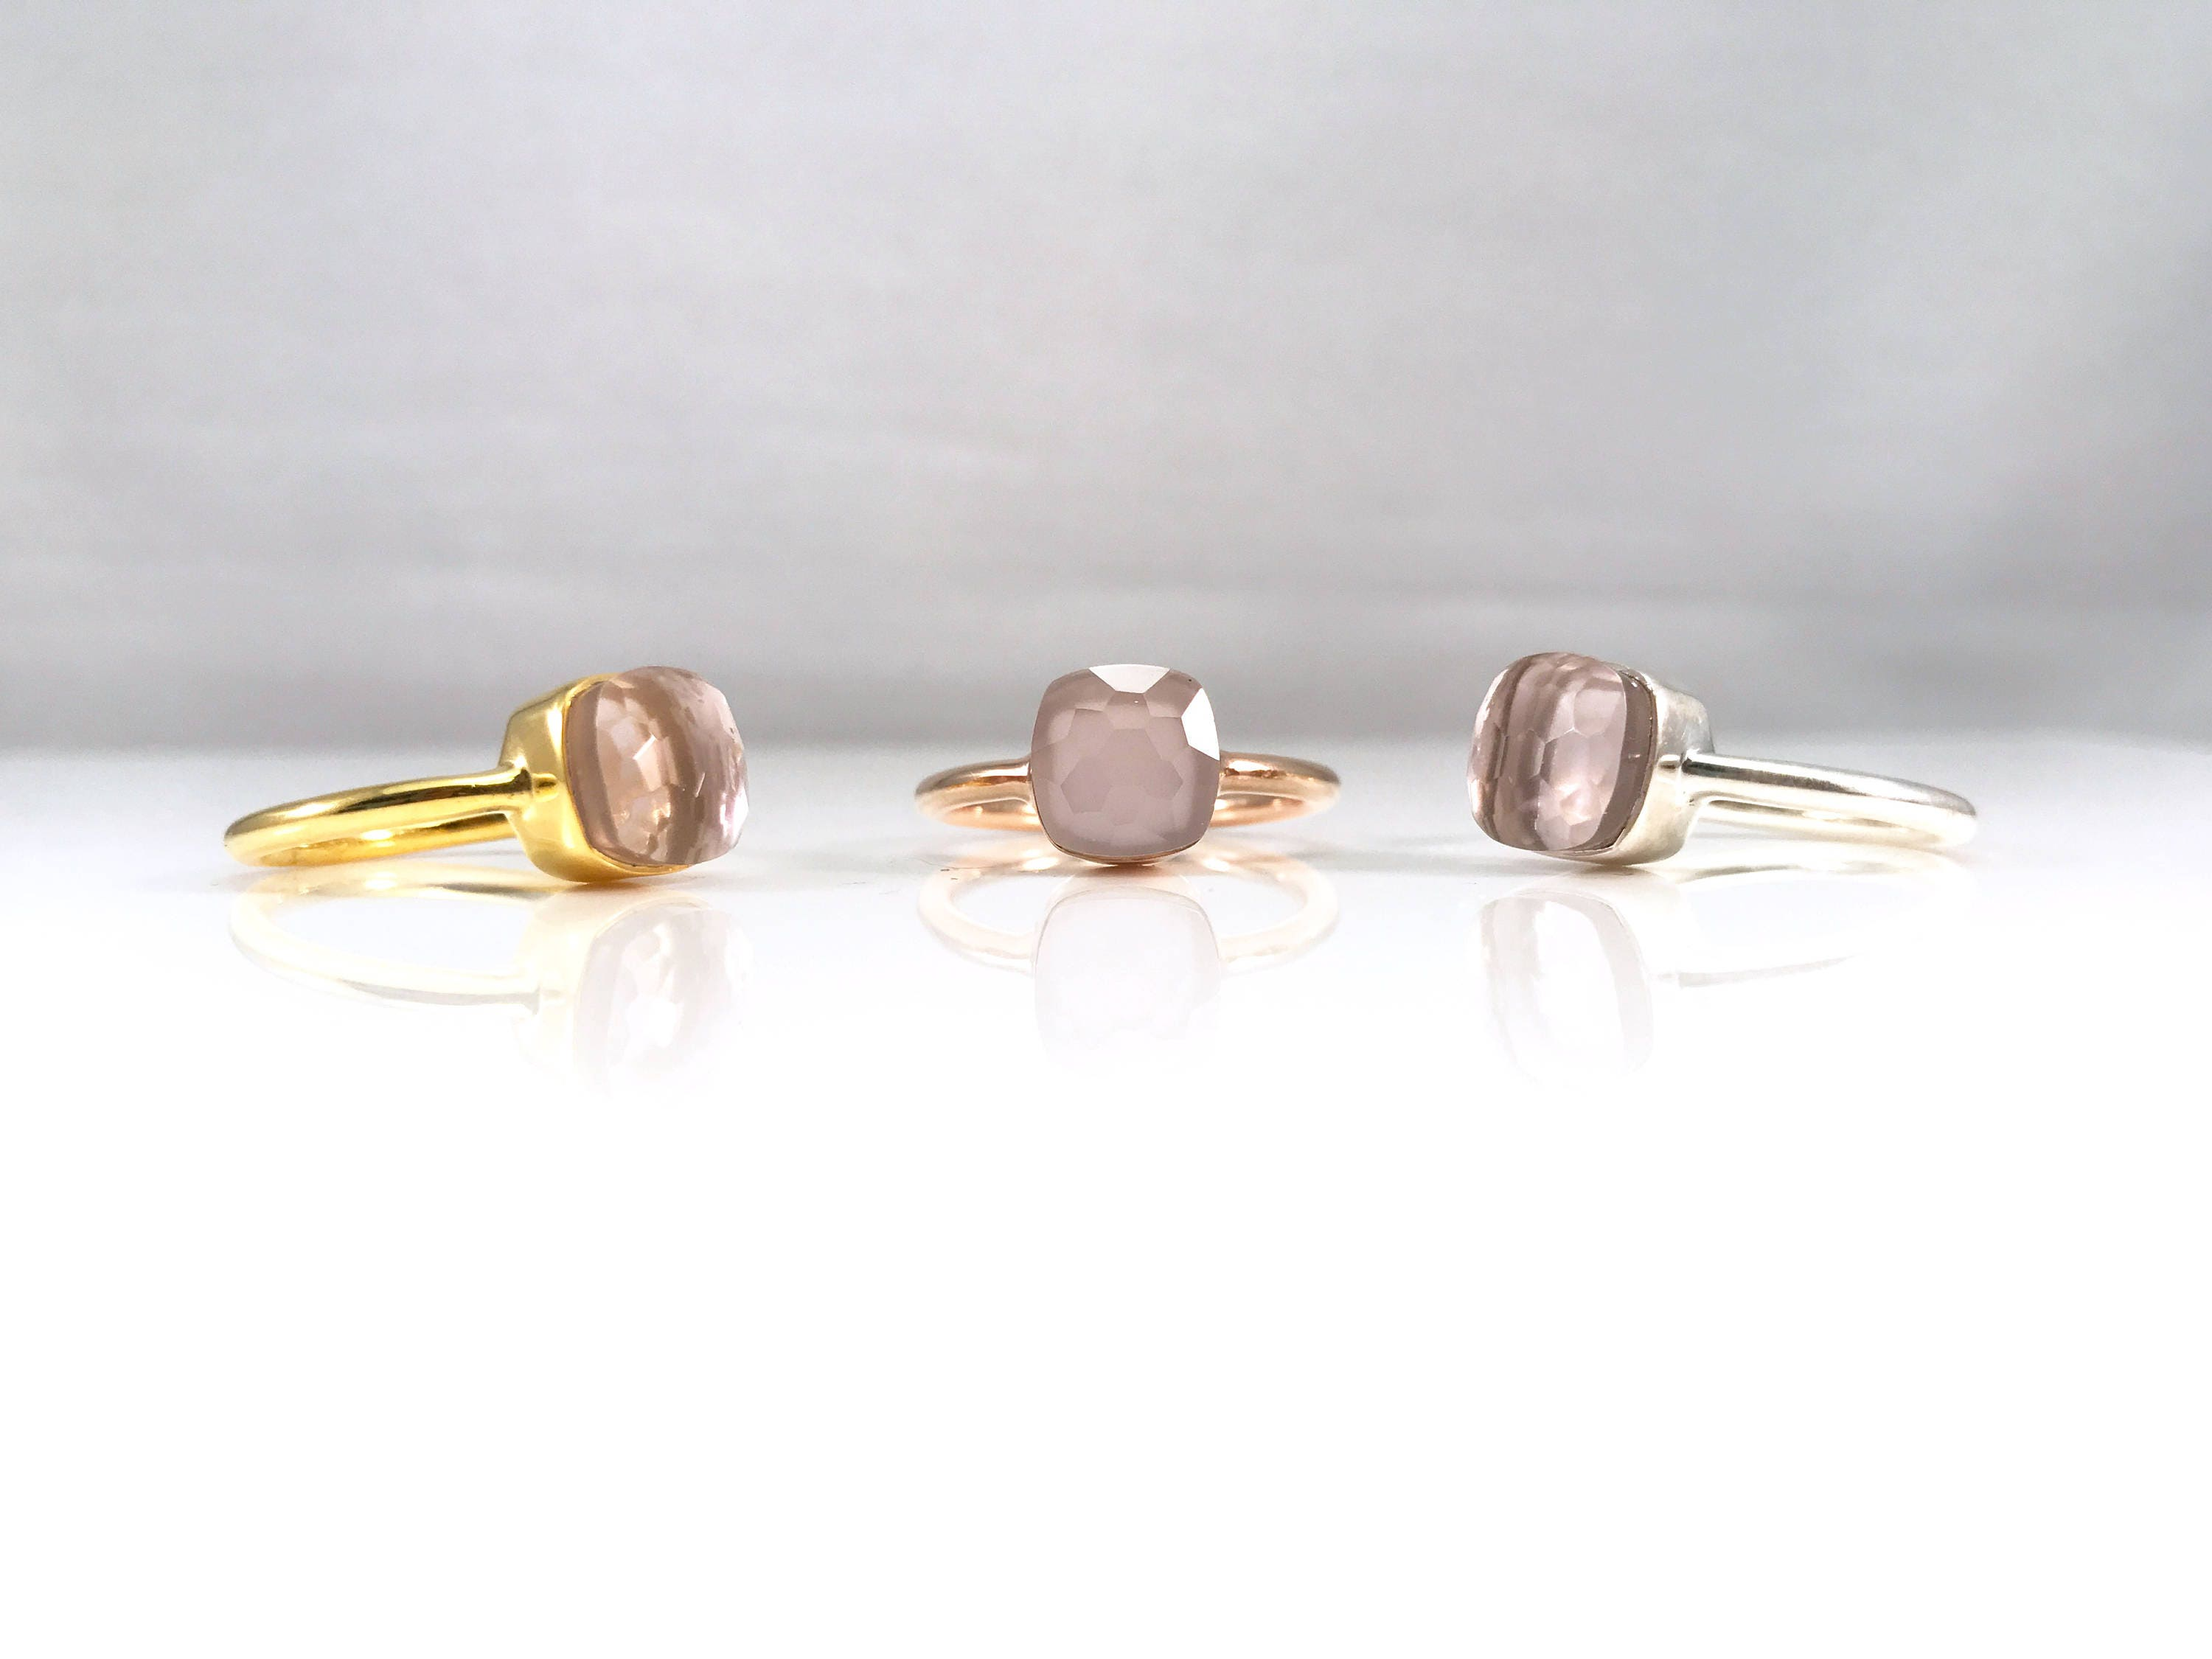 quartz jewelry by silver tangerine shop square products rose rings ring